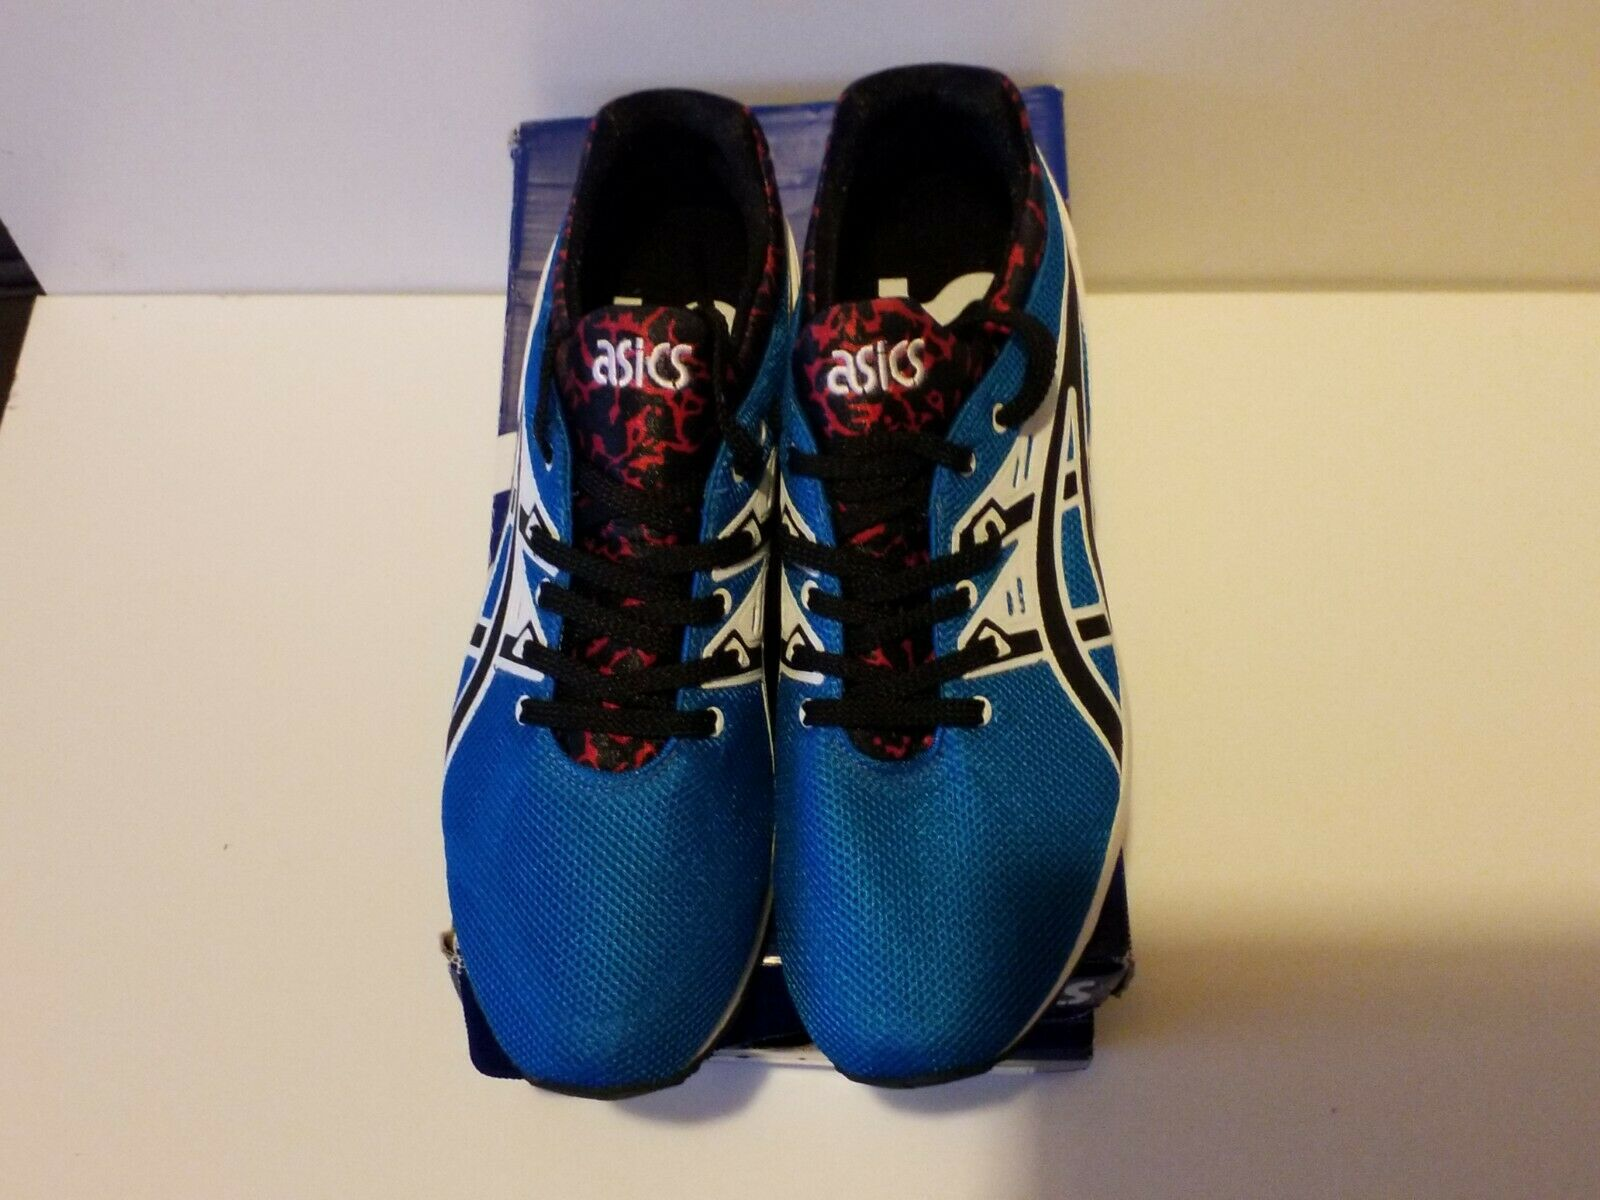 Asics Gel-Kayano Blue Textile Lace Up Mens Trainers HN513 4290 M14